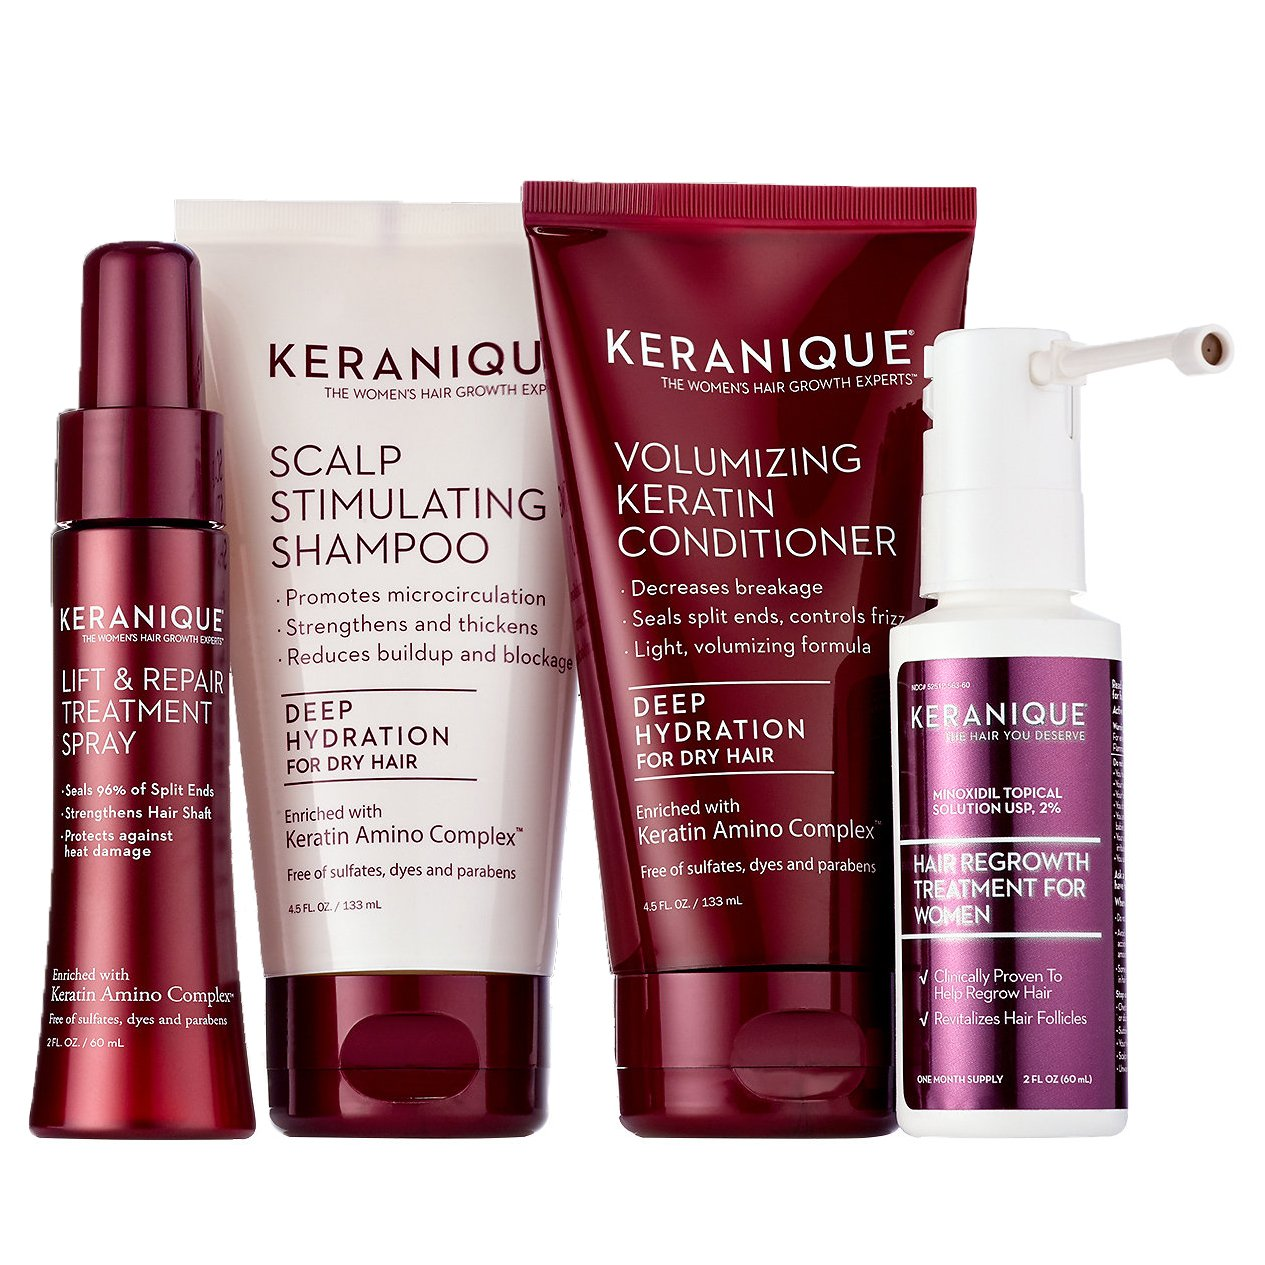 Keranique 30 Day Hair Regrowth System Deep Hydration (Deep Hydration Scalp Stimulating Shampoo and Volumizing Keratin Conditioner 4.5 oz Lift and Repair Treatment Spray 2.0 oz and Hair Regrowth Treat